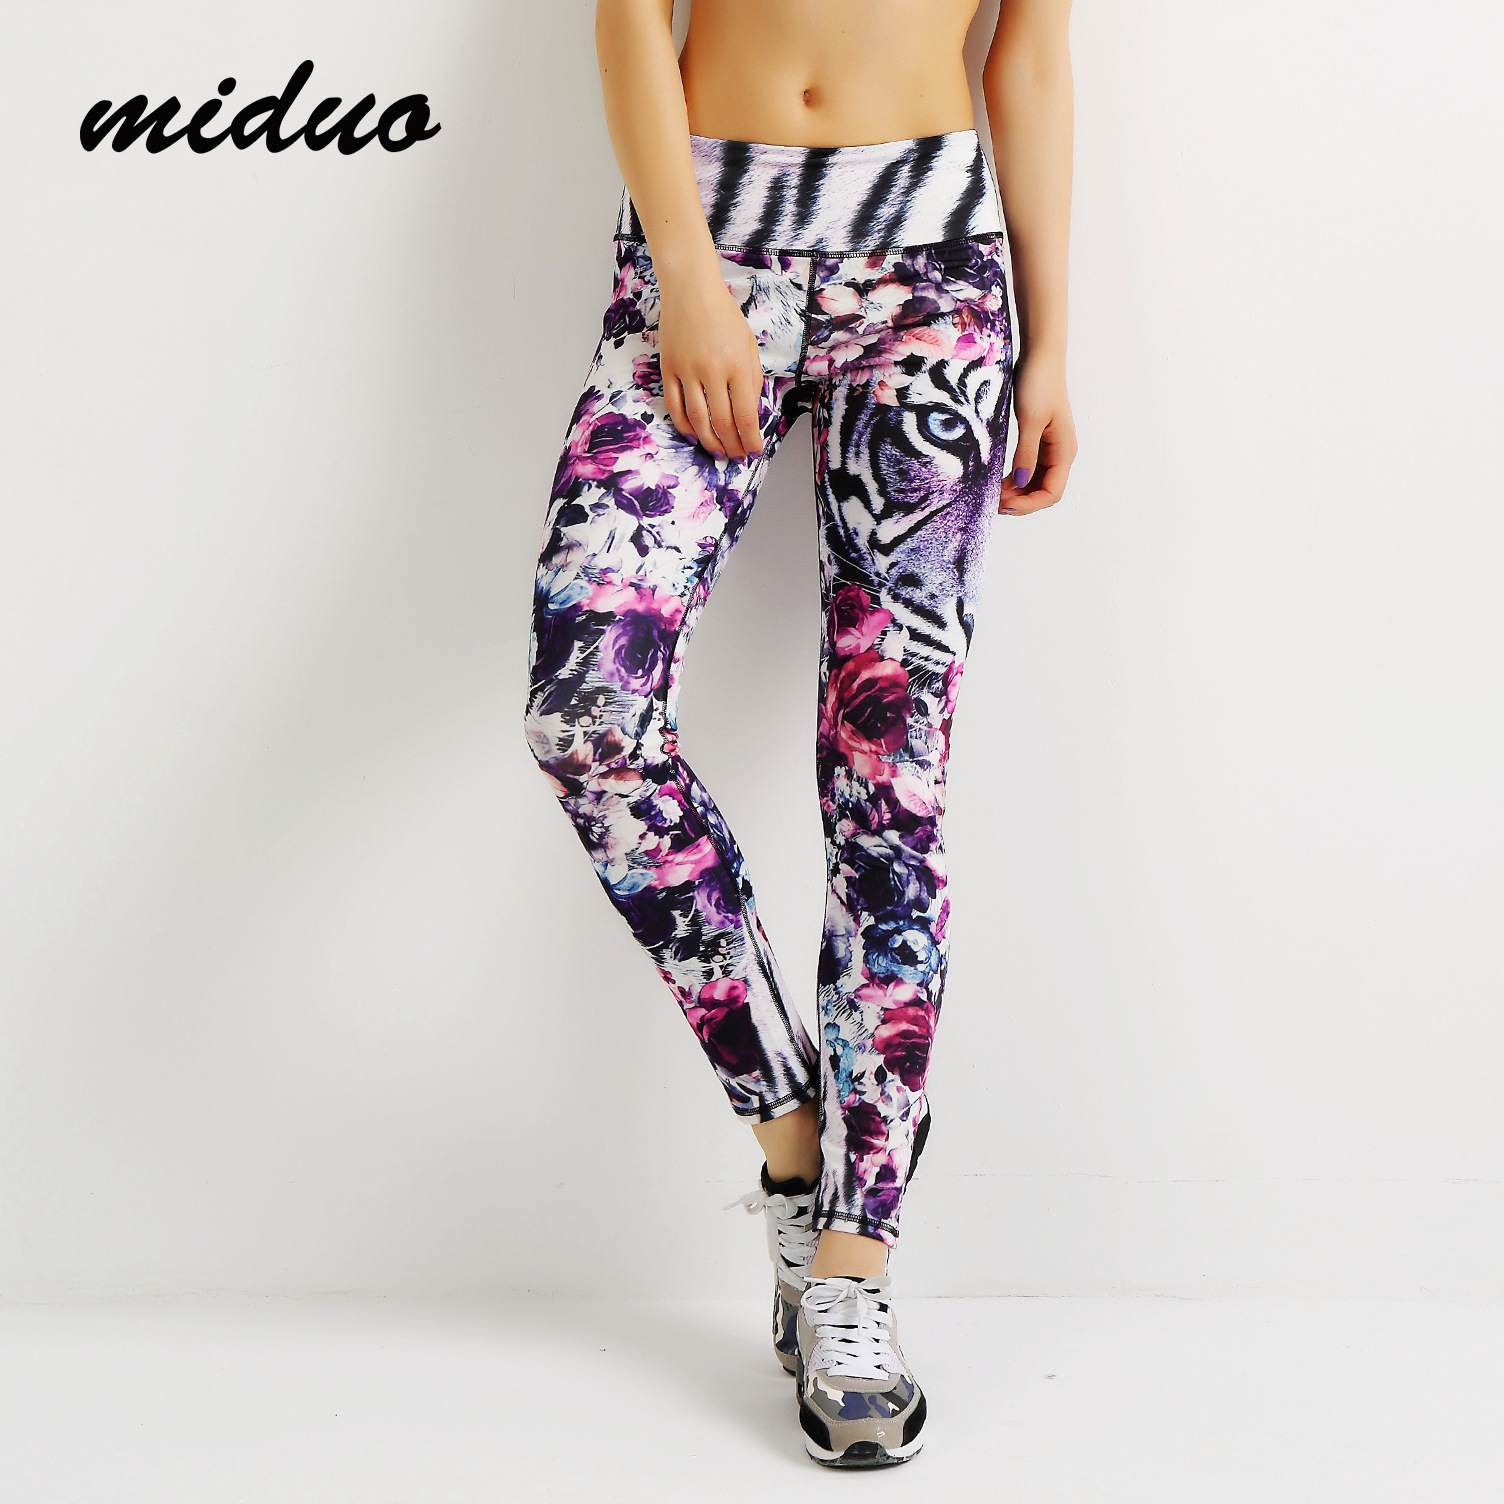 Compare Prices on Tiger Print Yoga Pants- Online Shopping/Buy Low ...